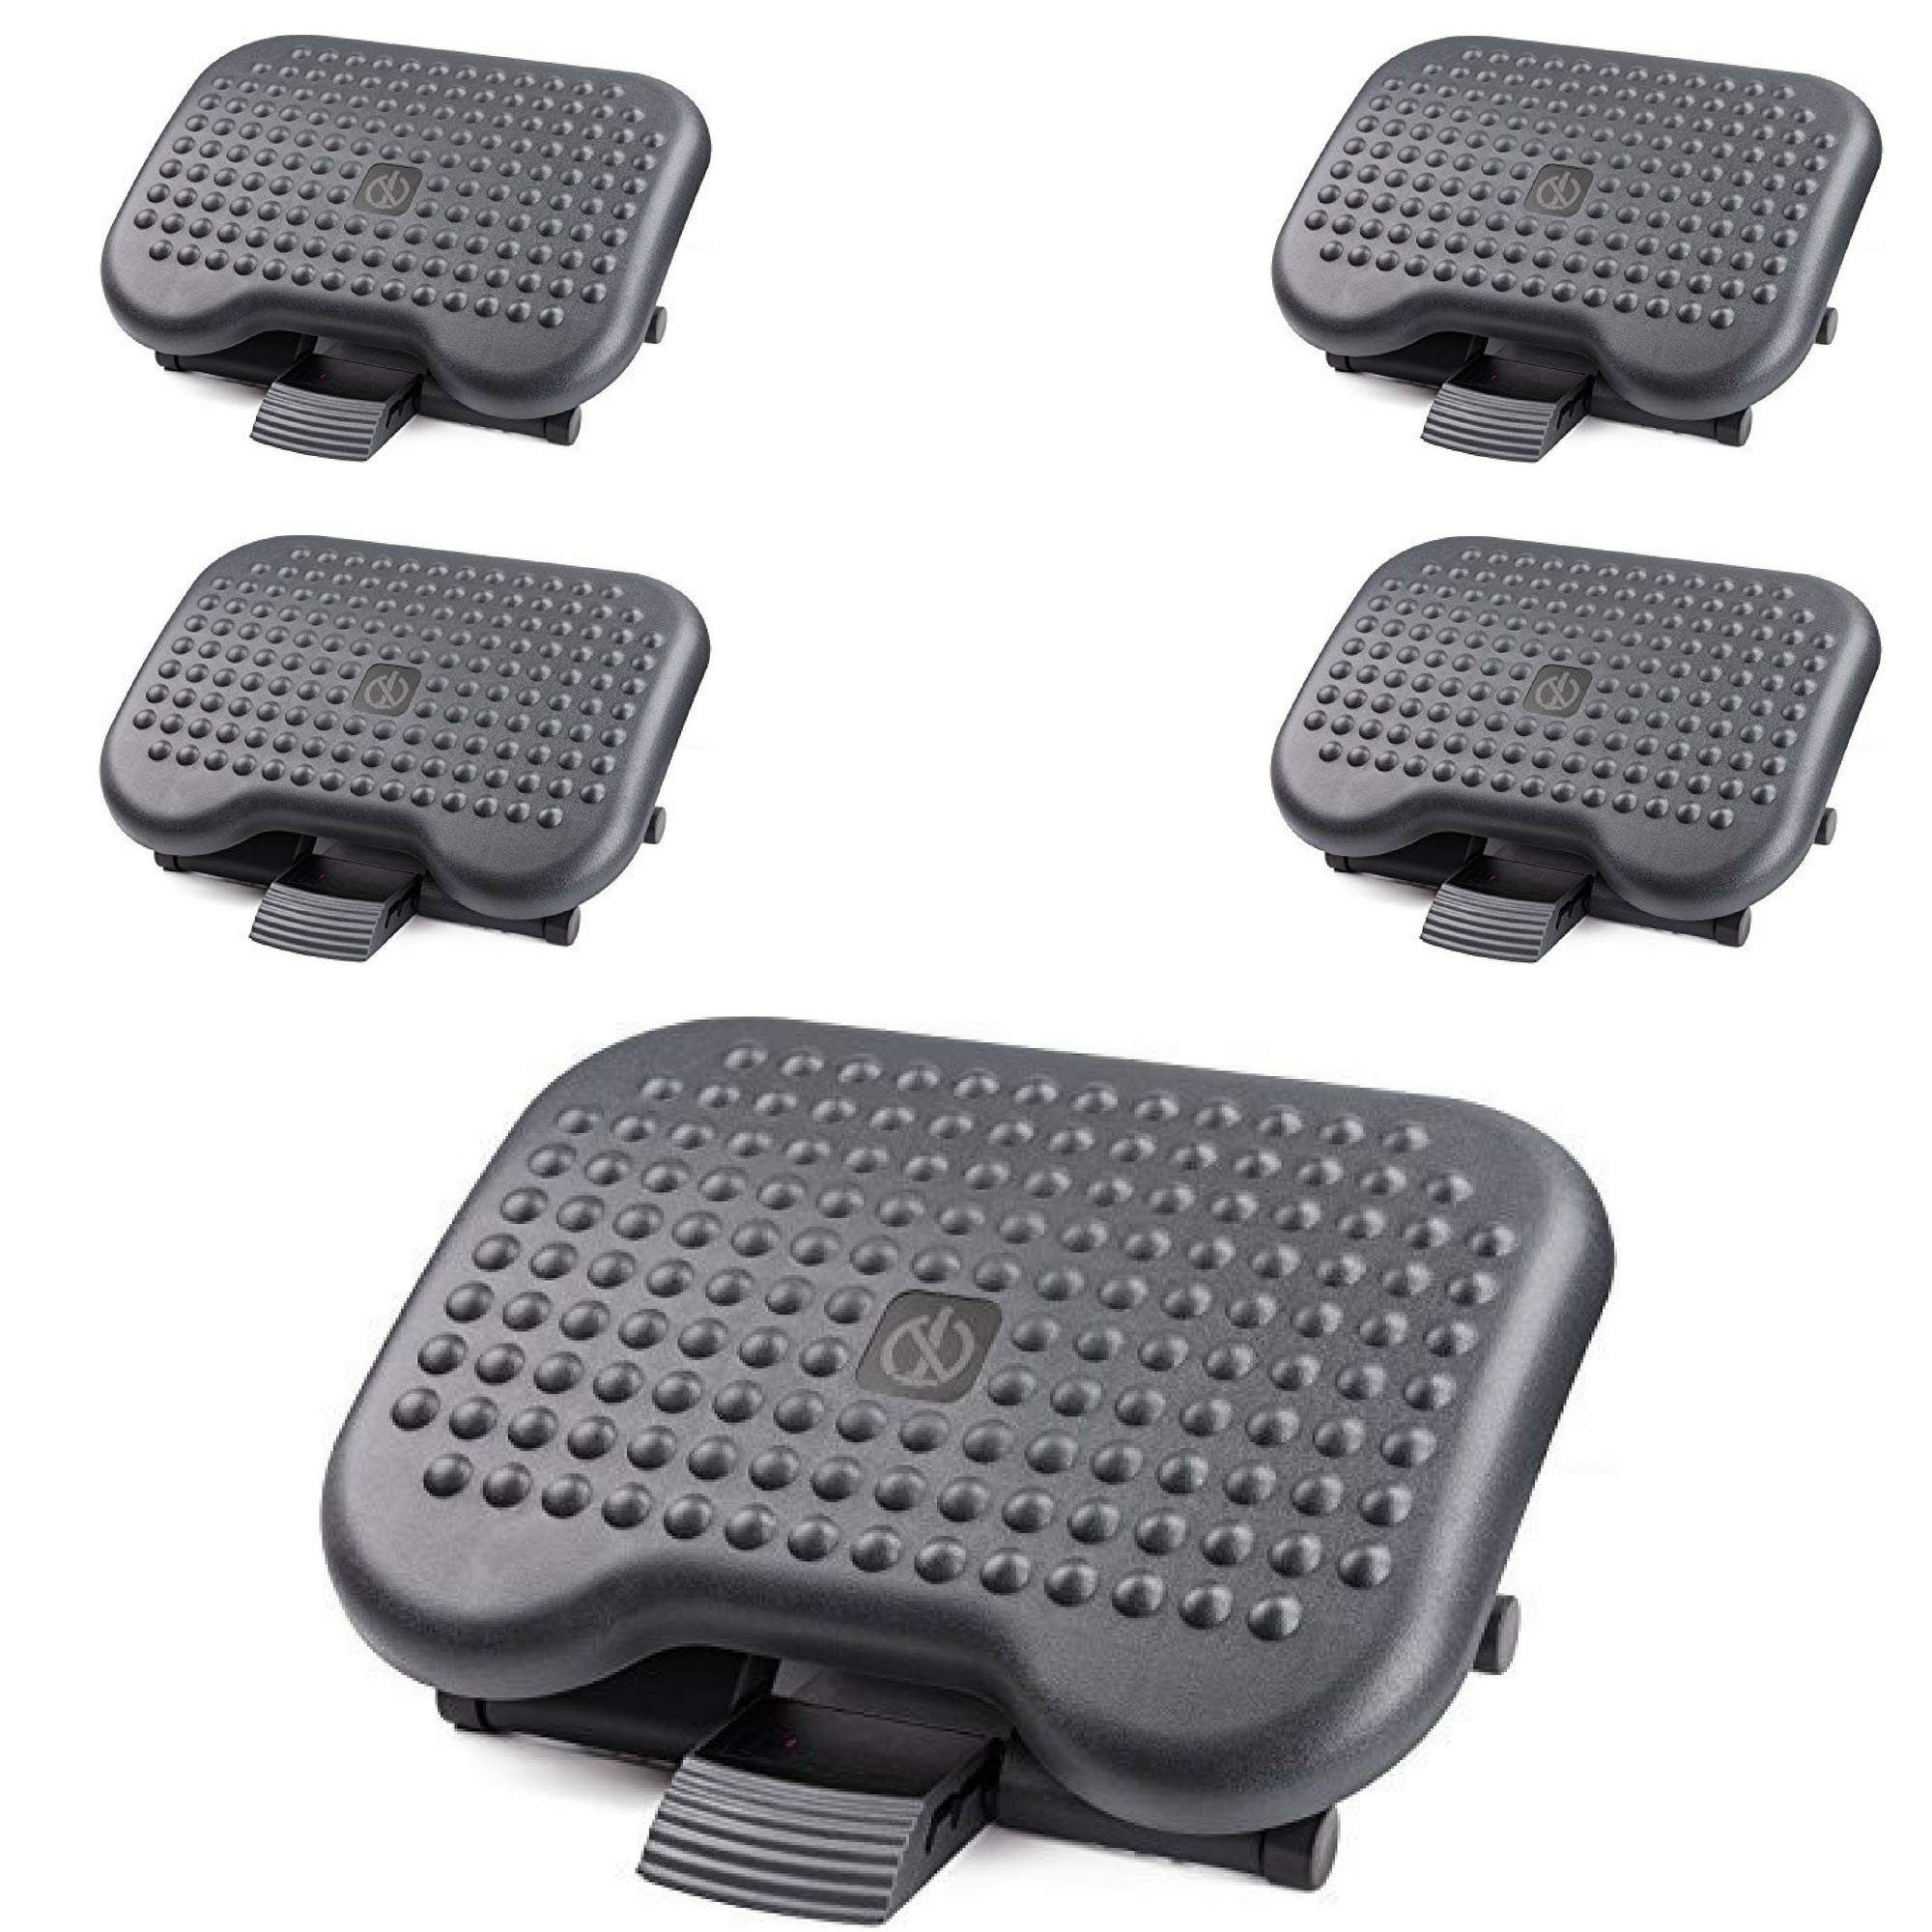 Under Desk Foot Rest, Black Footstool & Office Ergonomic Footrest, Adjustable Angle & 3 Different Height Positions, 18.1'' X 13.3'' - Great for Home & Work - 5 Pack